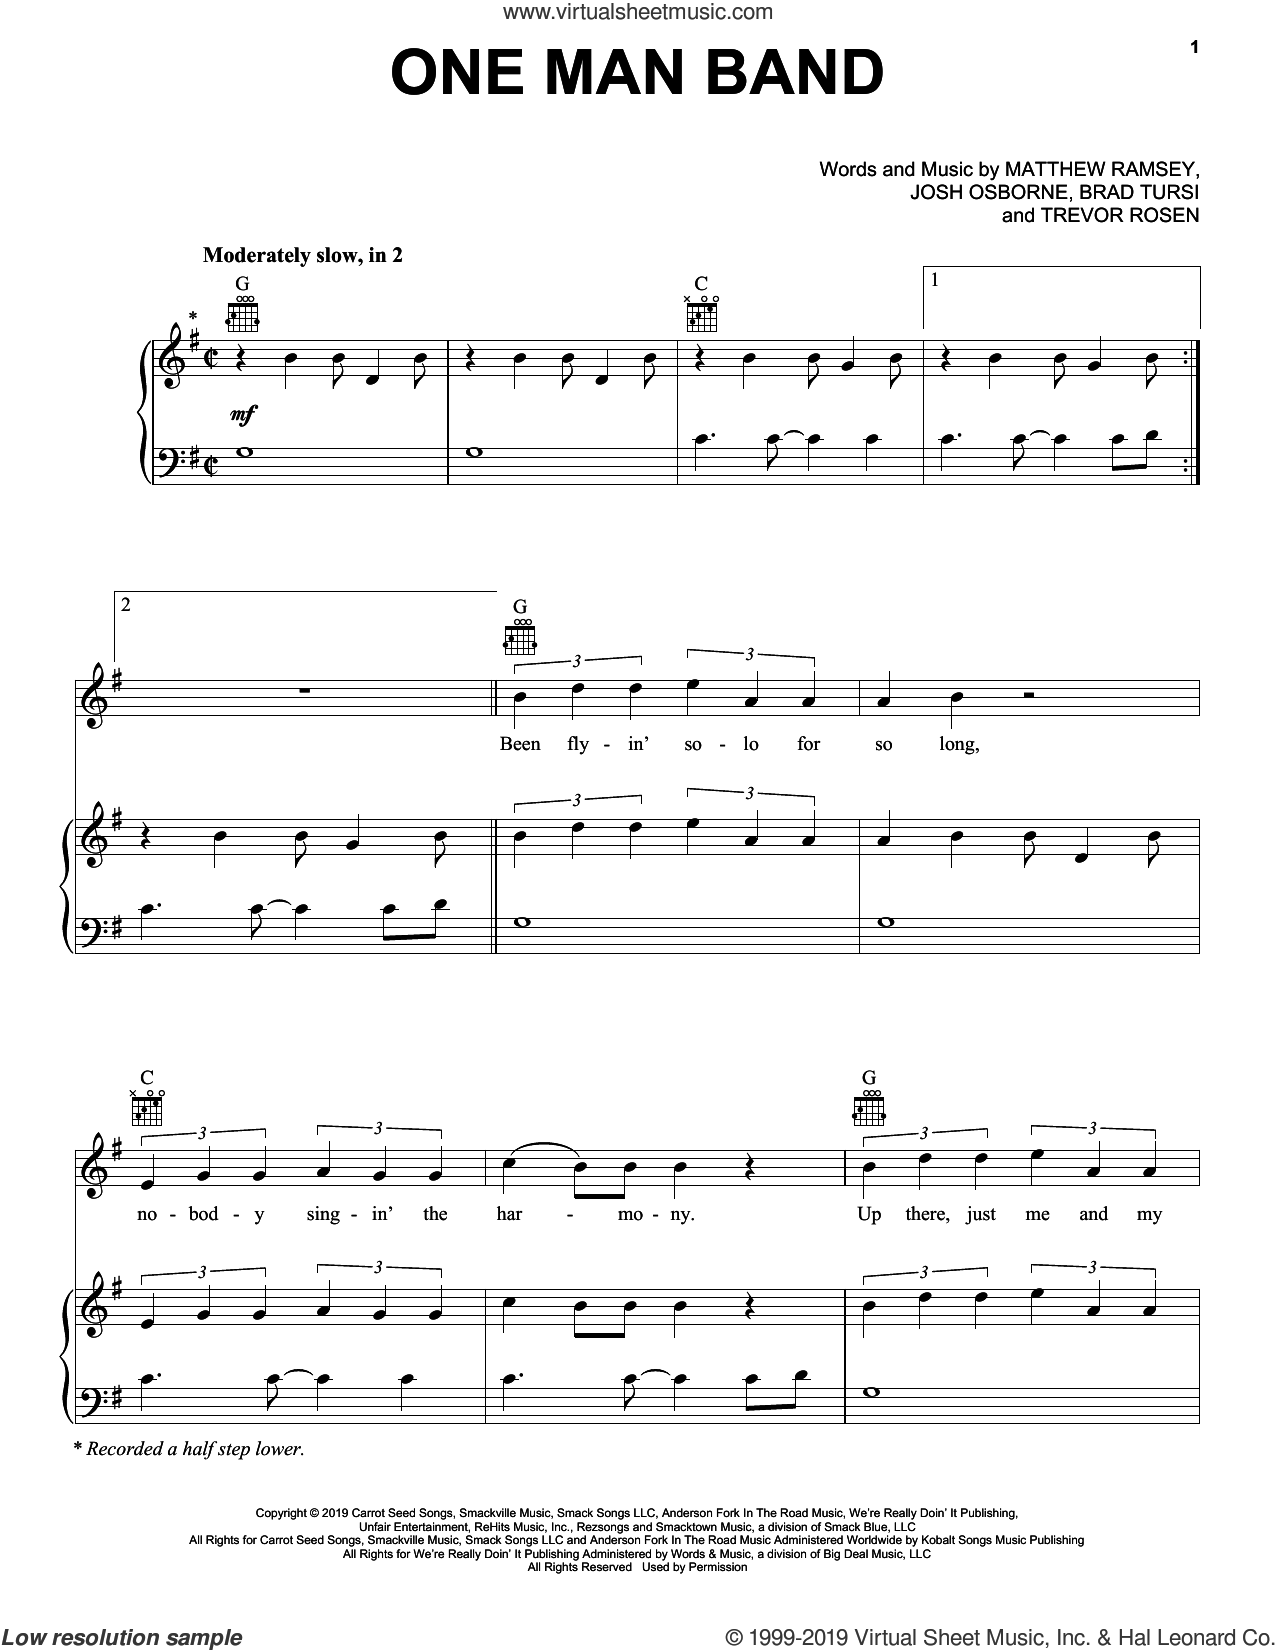 One Man Band sheet music for voice, piano or guitar by Old Dominion, Brad Tursi, Josh Osborne, Matthew Ramsey and Trevor Rosen, intermediate skill level